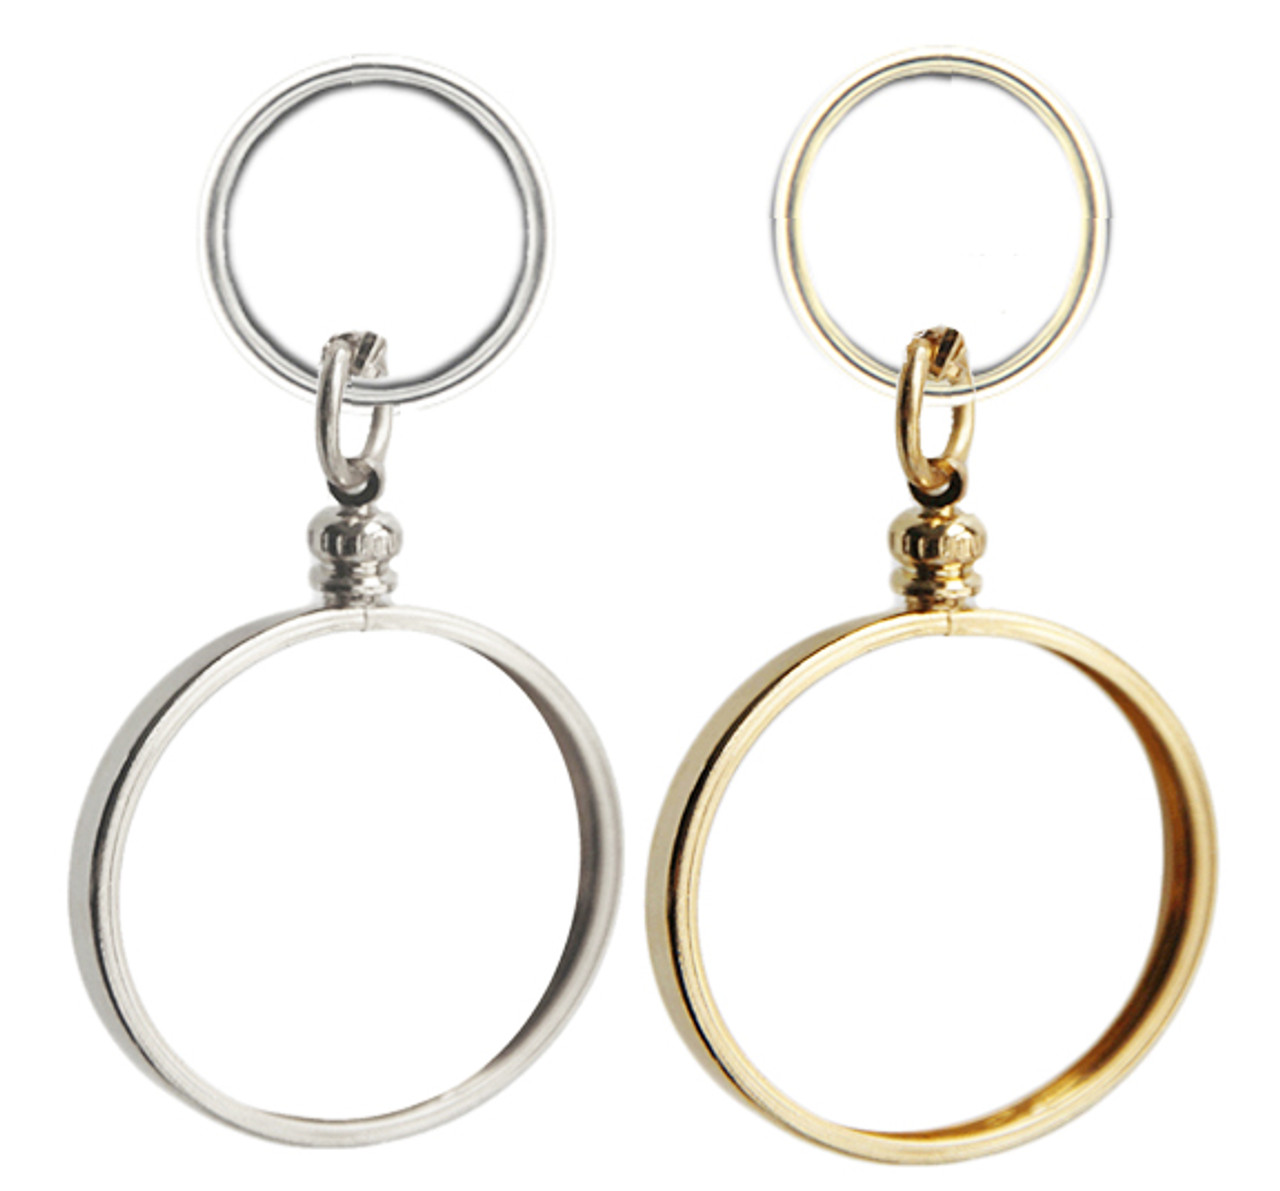 7ccc8e6a6a8 Silver or Gold Finish Key Chain Bezel for your recovery medallion or coin.